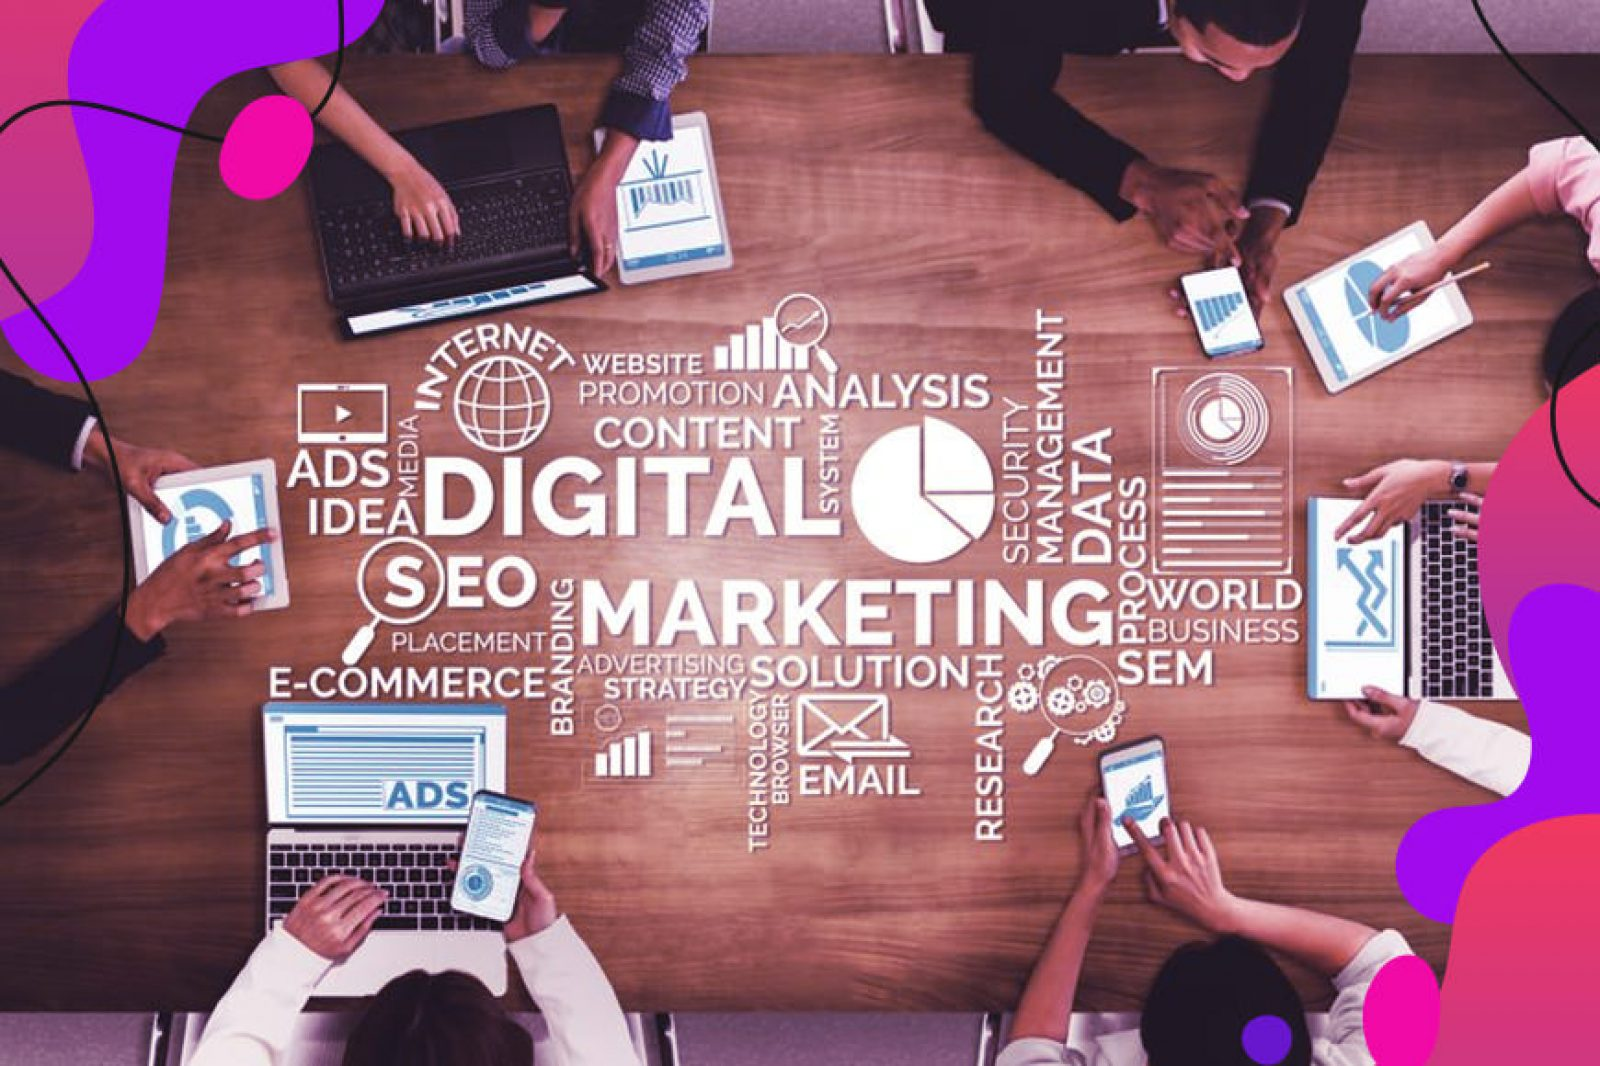 Looking To Enroll in Digital Marketing Courses? Consider These 5 Options